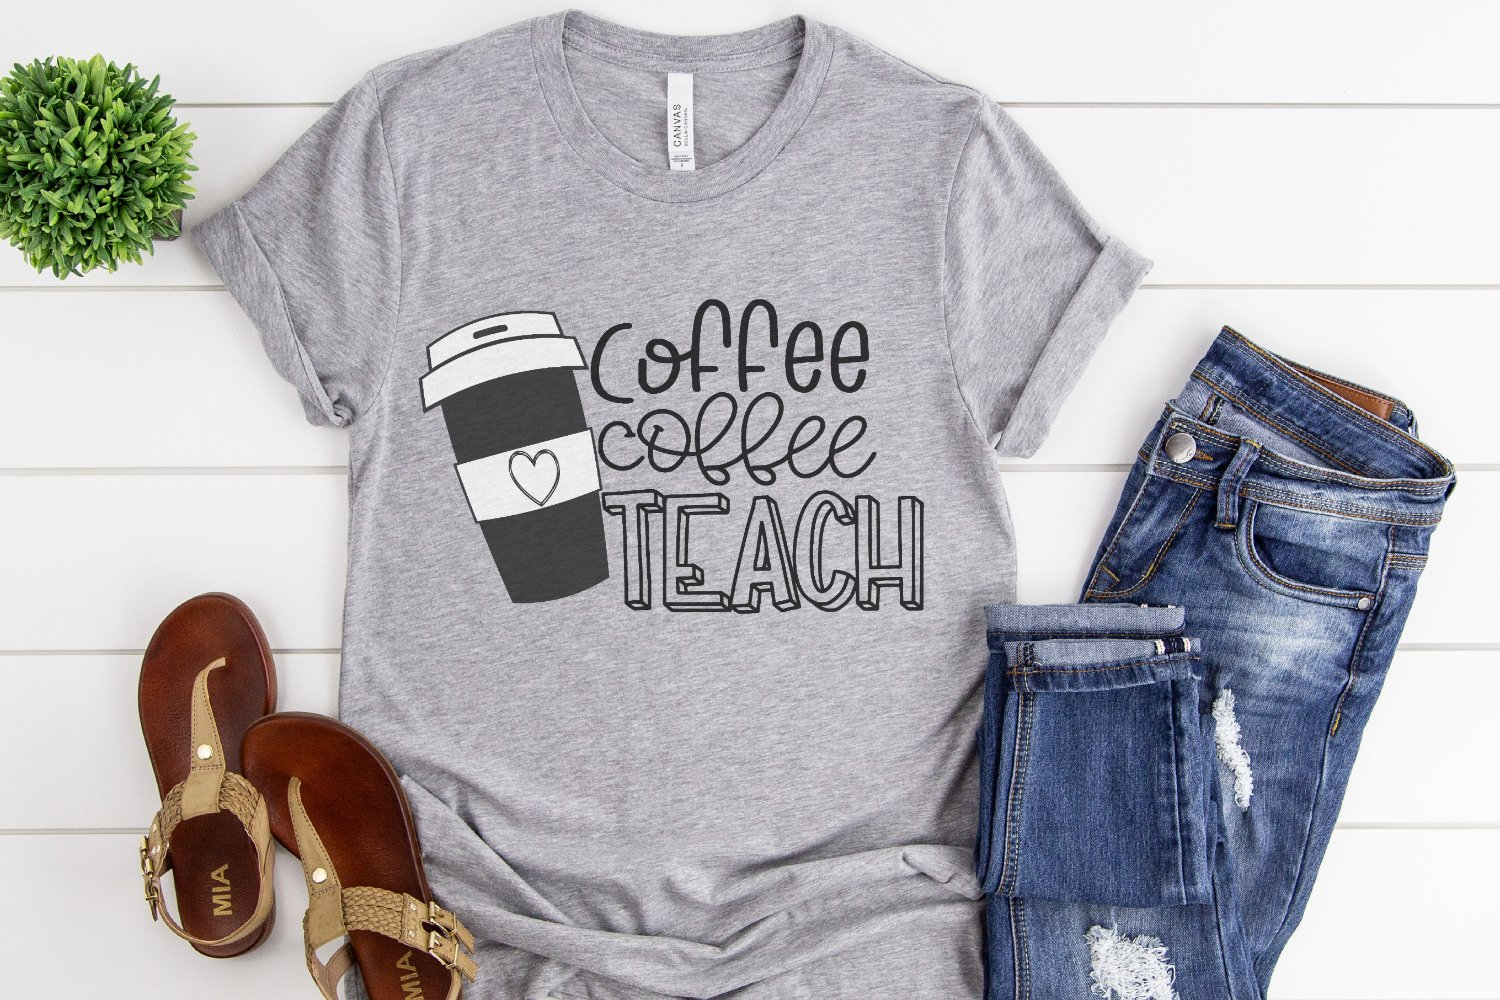 Teacher Back To School Coffee Coffee Teach Svg 299630 Cut Files Design Bundles